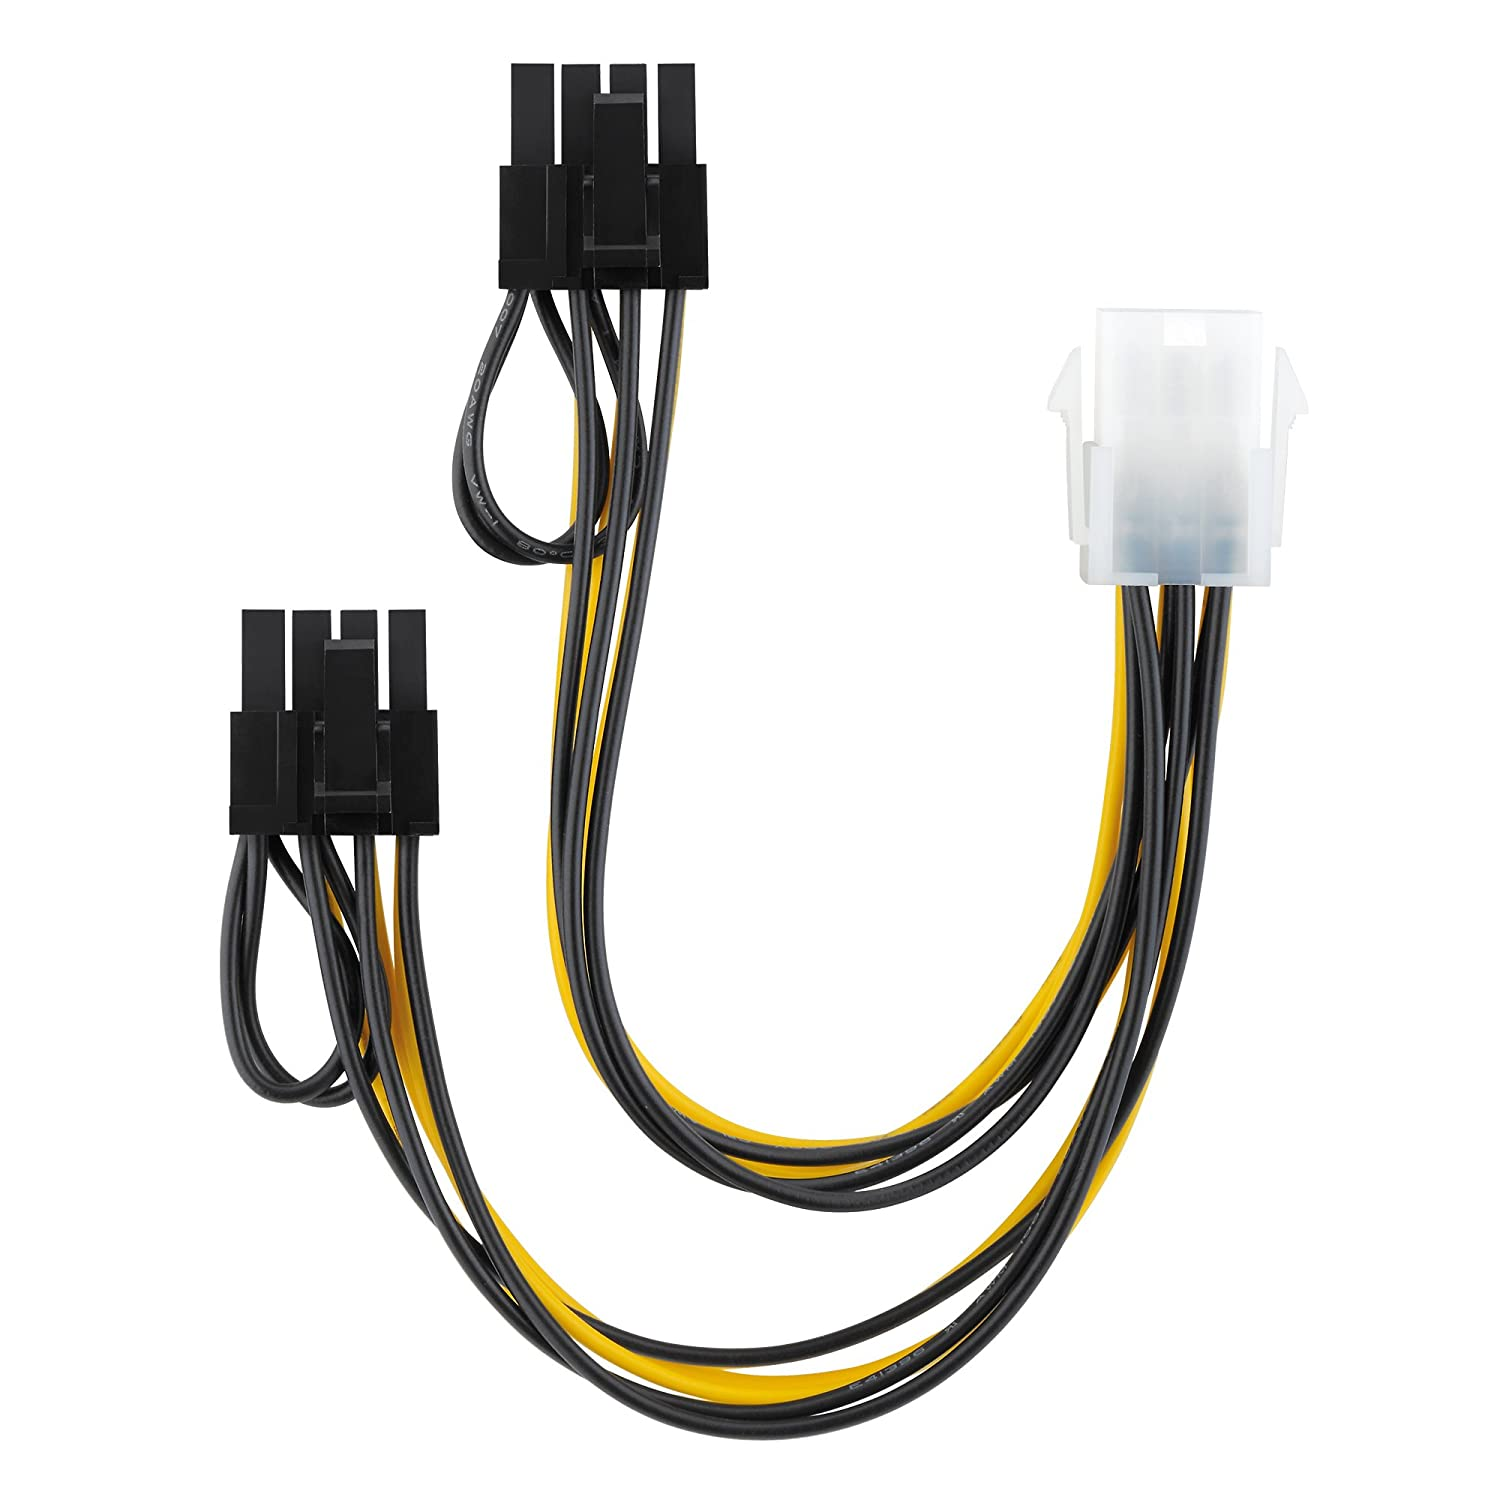 conecto CC20020 Power Adapter Cable for Graphics Card Black 60 cm CC20024